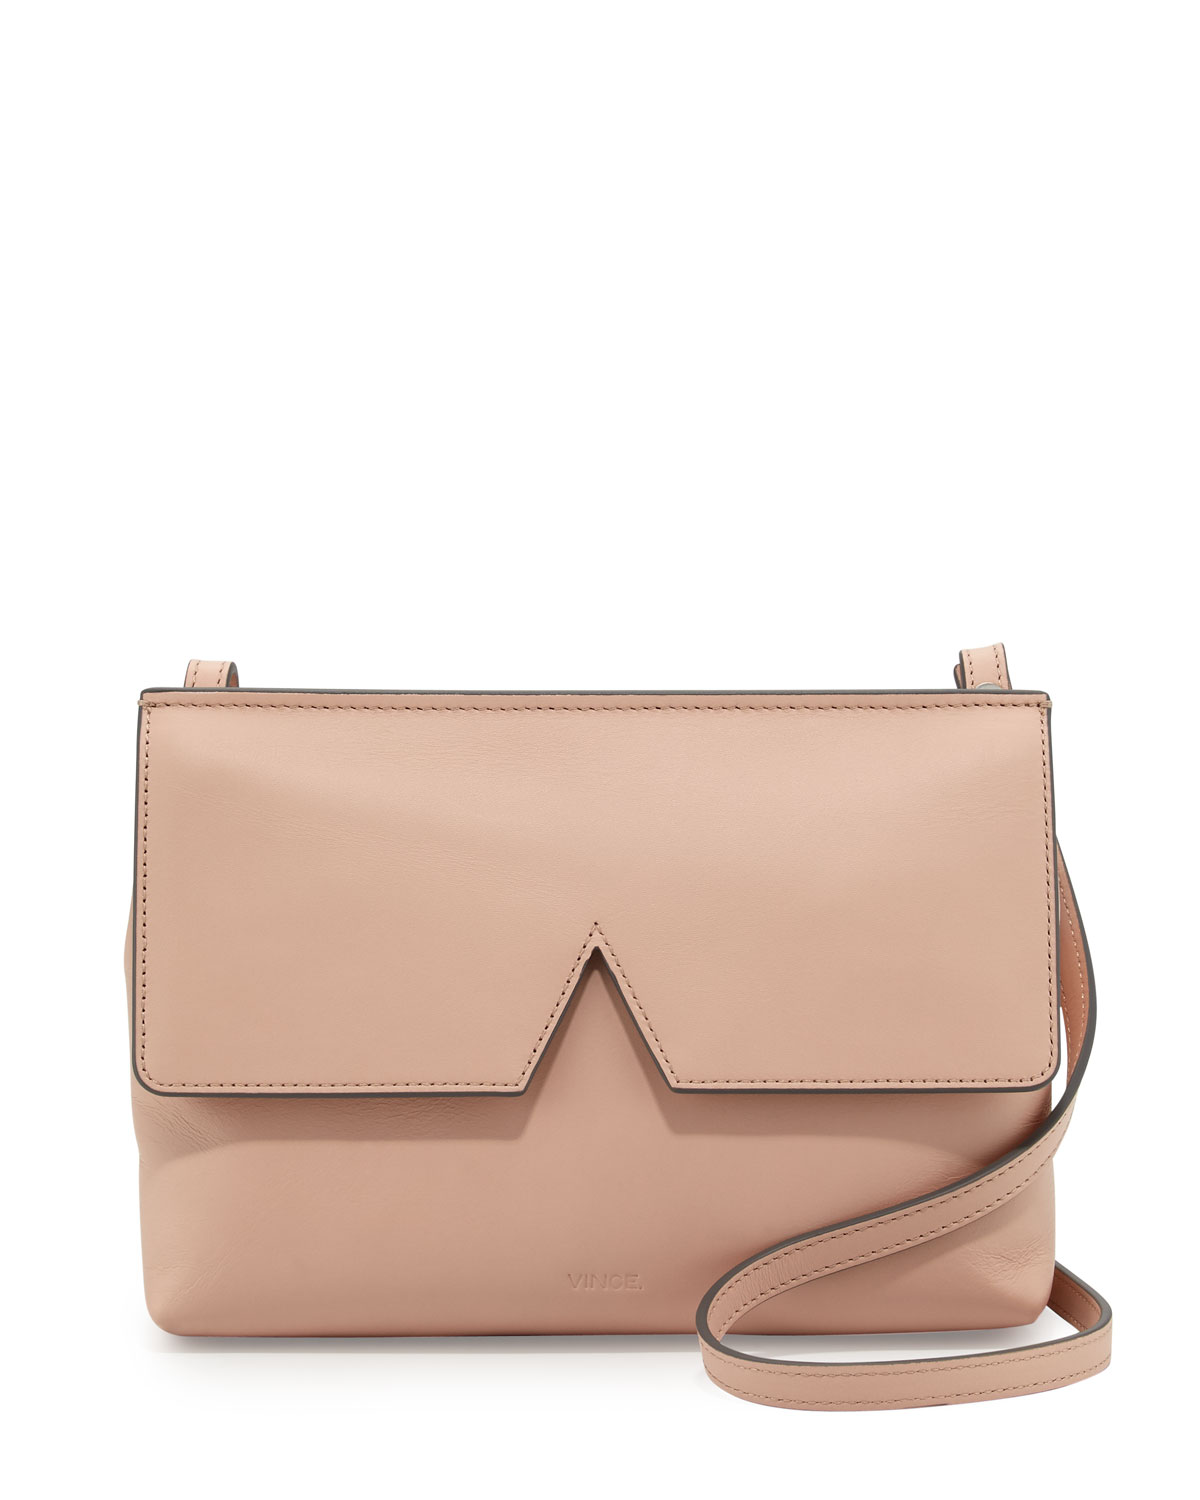 Signature V Leather Baby Crossbody Bag Blush